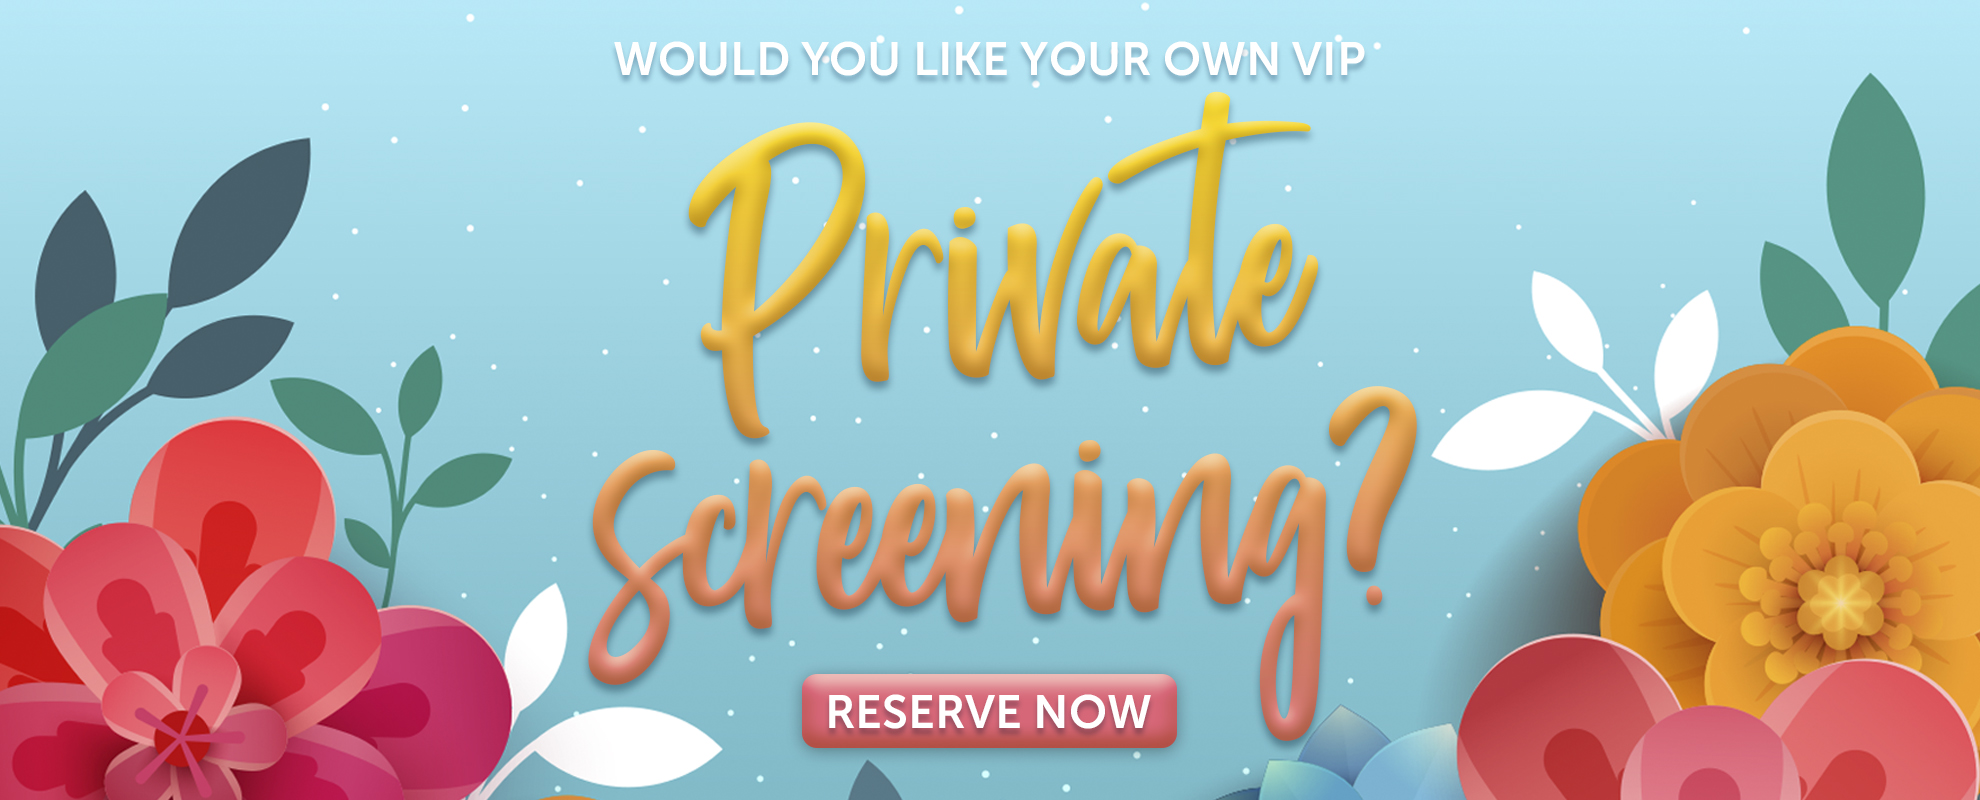 Private Screening - Spring image